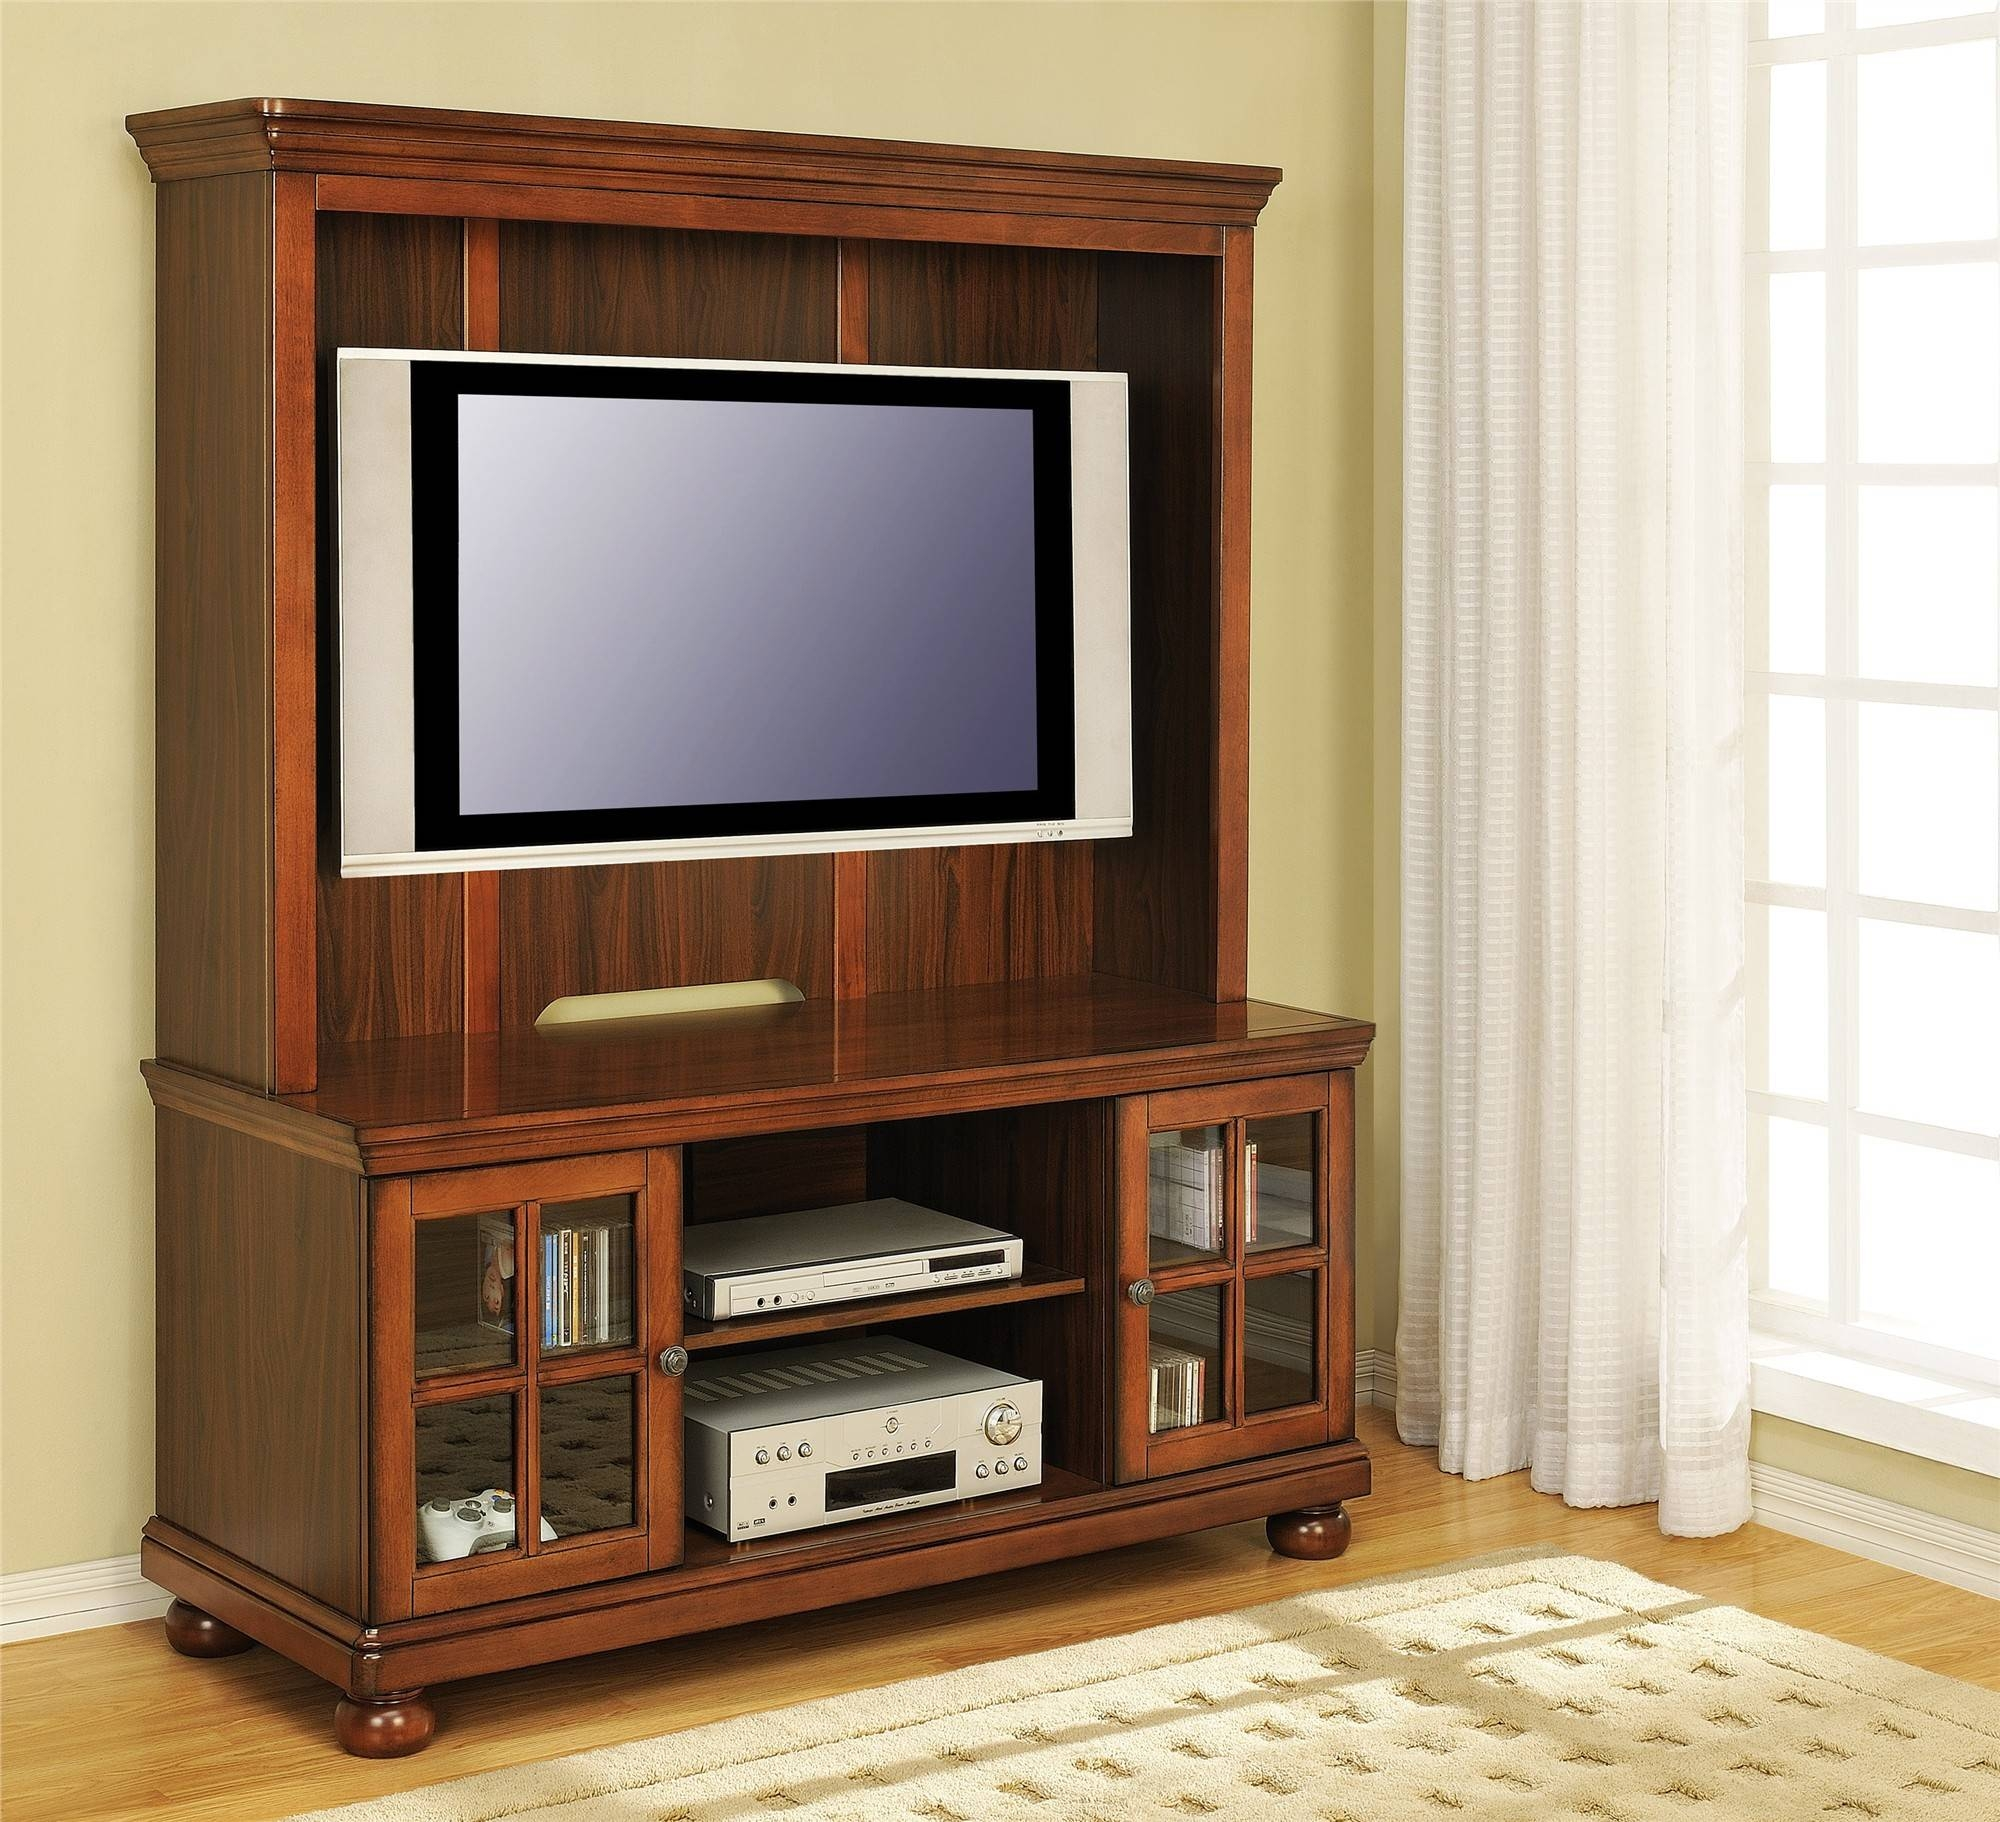 "Free Ship Furnishings | 50"" Flat Screen Traditional Wood Tv Stand within Wooden Tv Cabinets With Glass Doors (Image 7 of 15)"